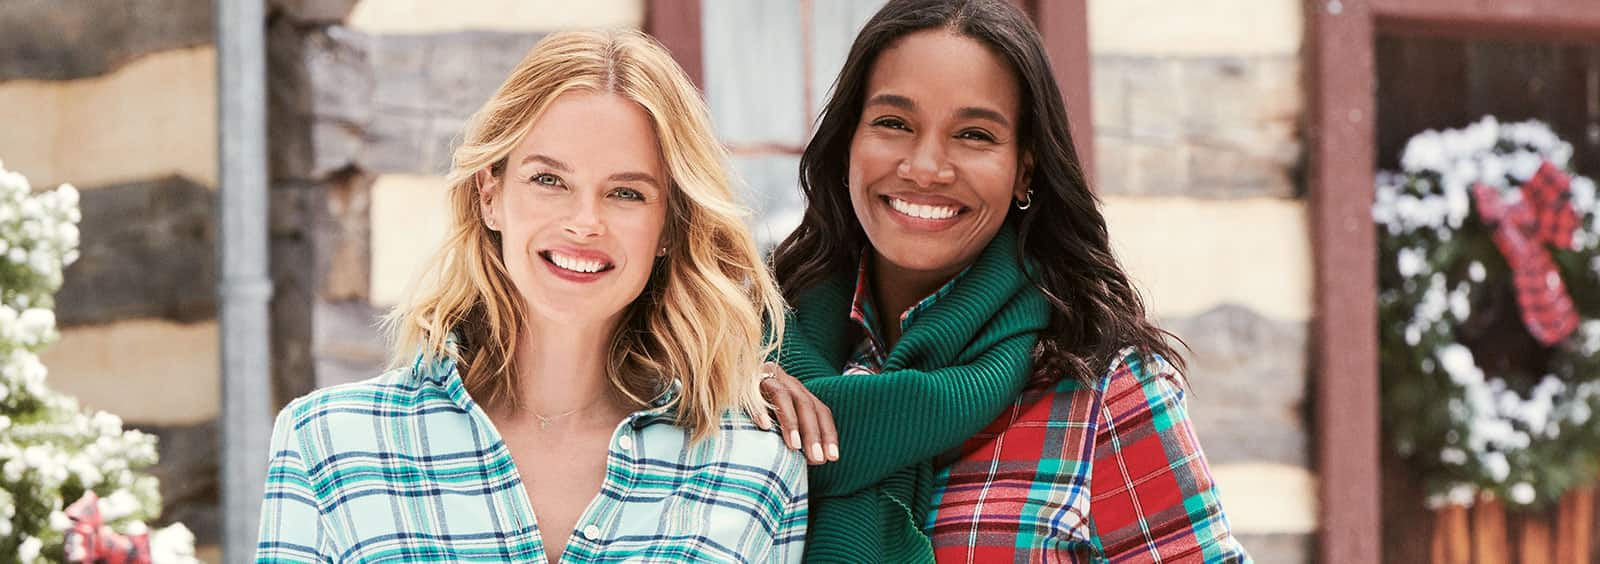 Flannel Shirts That Every Woman Can Rock